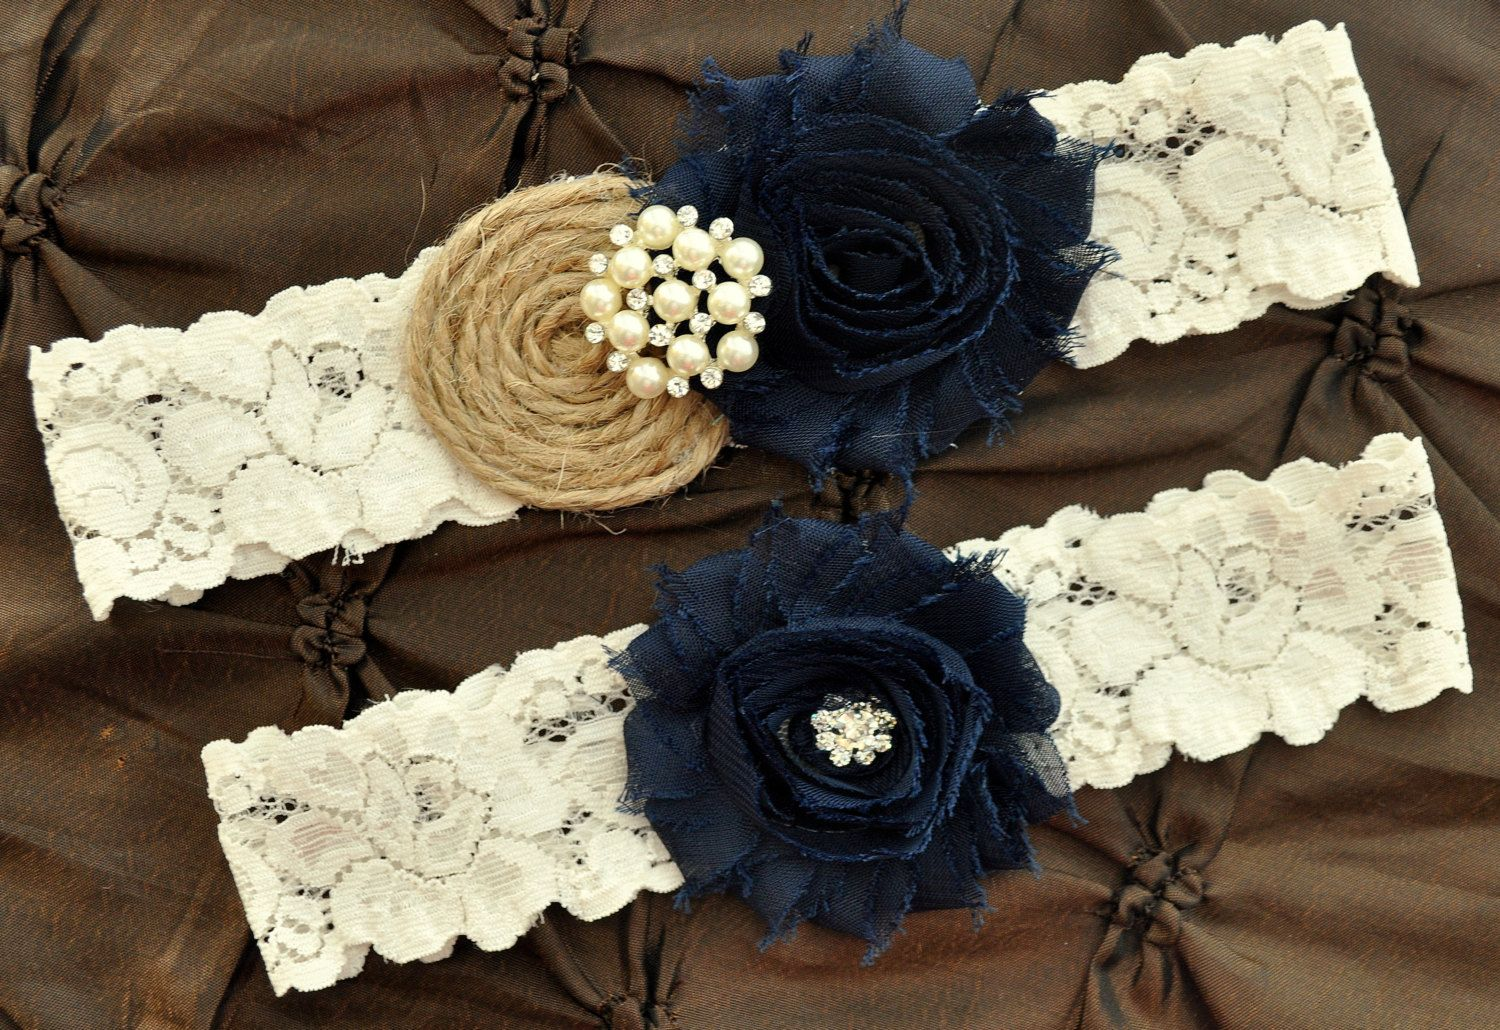 Best 25 Wedding Stress Ideas On Pinterest: Best 25+ Navy Burlap Wedding Ideas On Pinterest